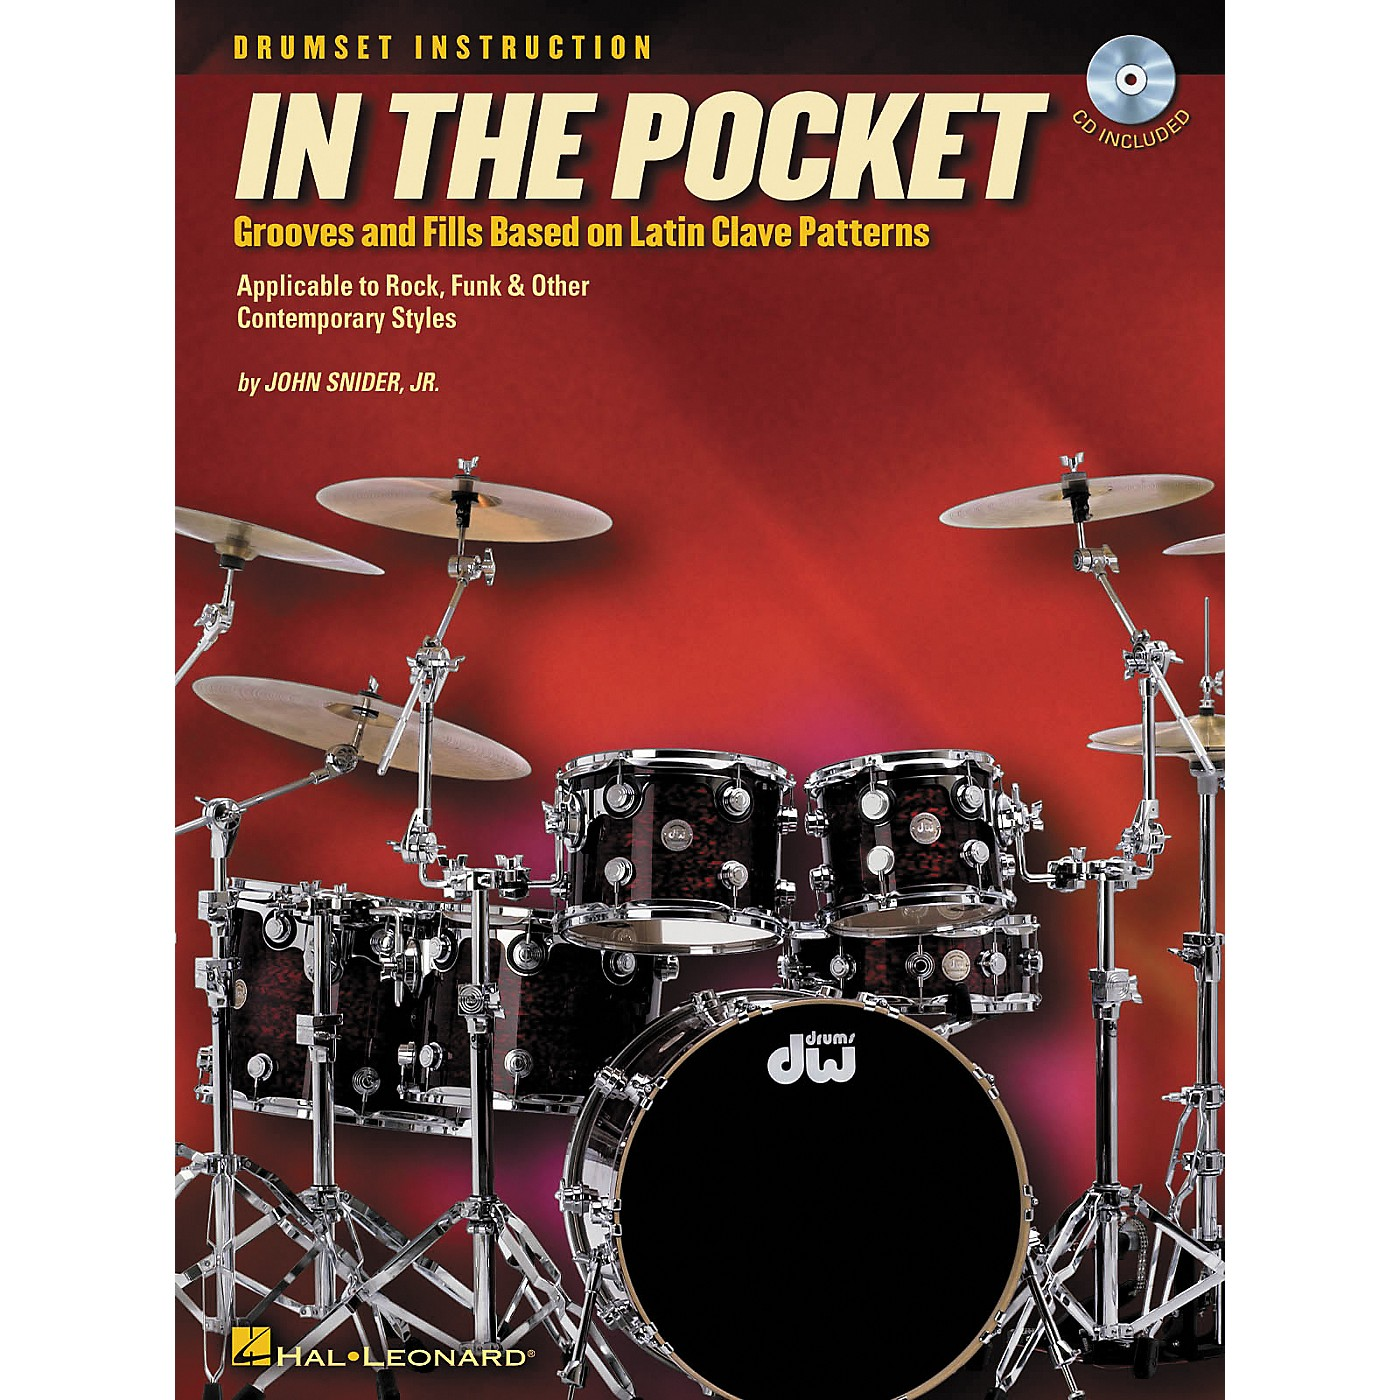 Hal Leonard In the Pocket - Grooves and Fills Based on Latin Clave Patterns (Book/CD) thumbnail